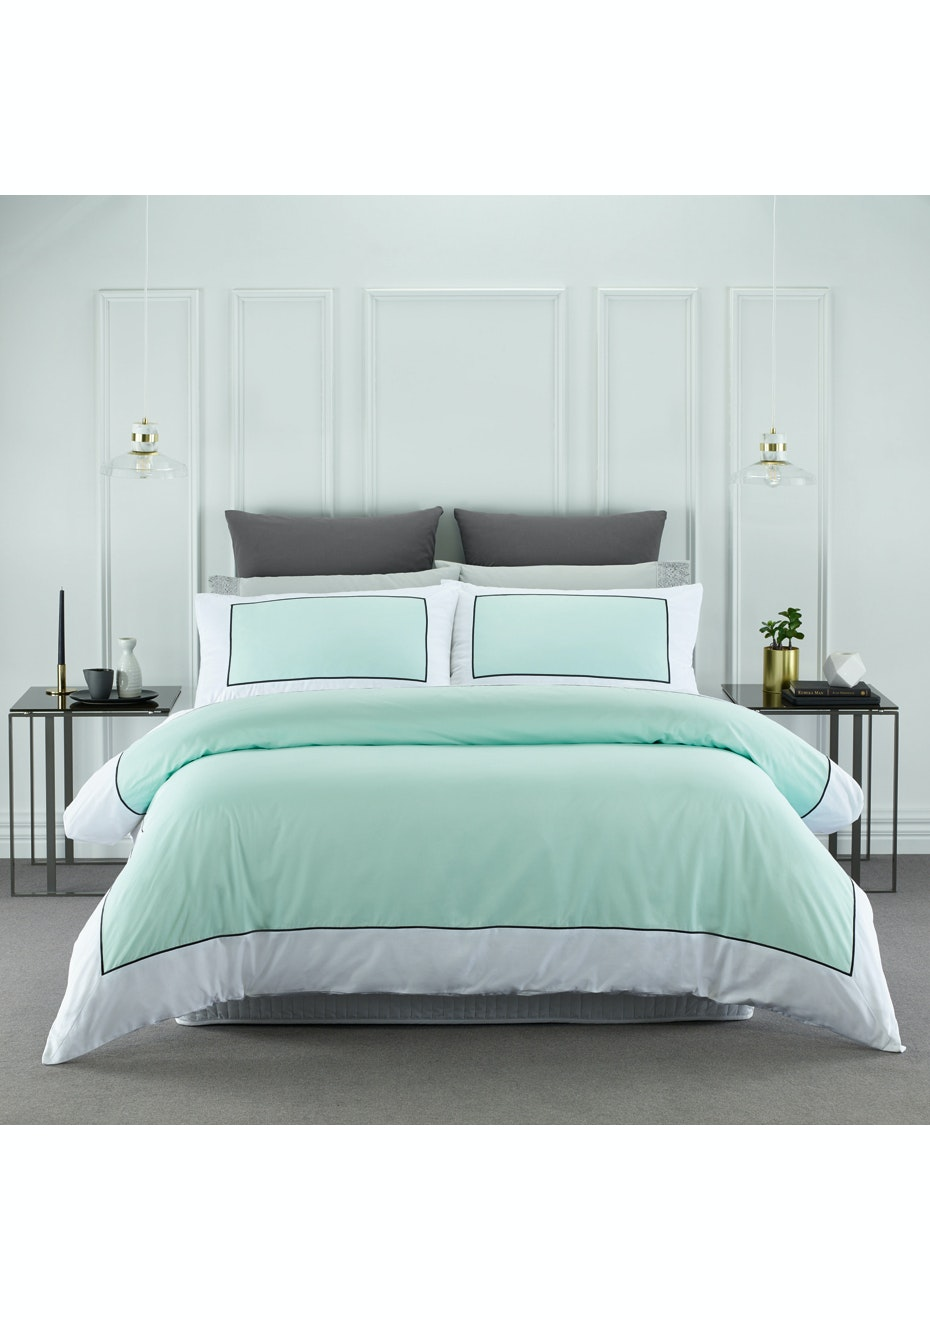 Style & Co 1000 Thread count Egyptian Cotton Hotel Collection Ascot Quilt Cover sets Super King Mist